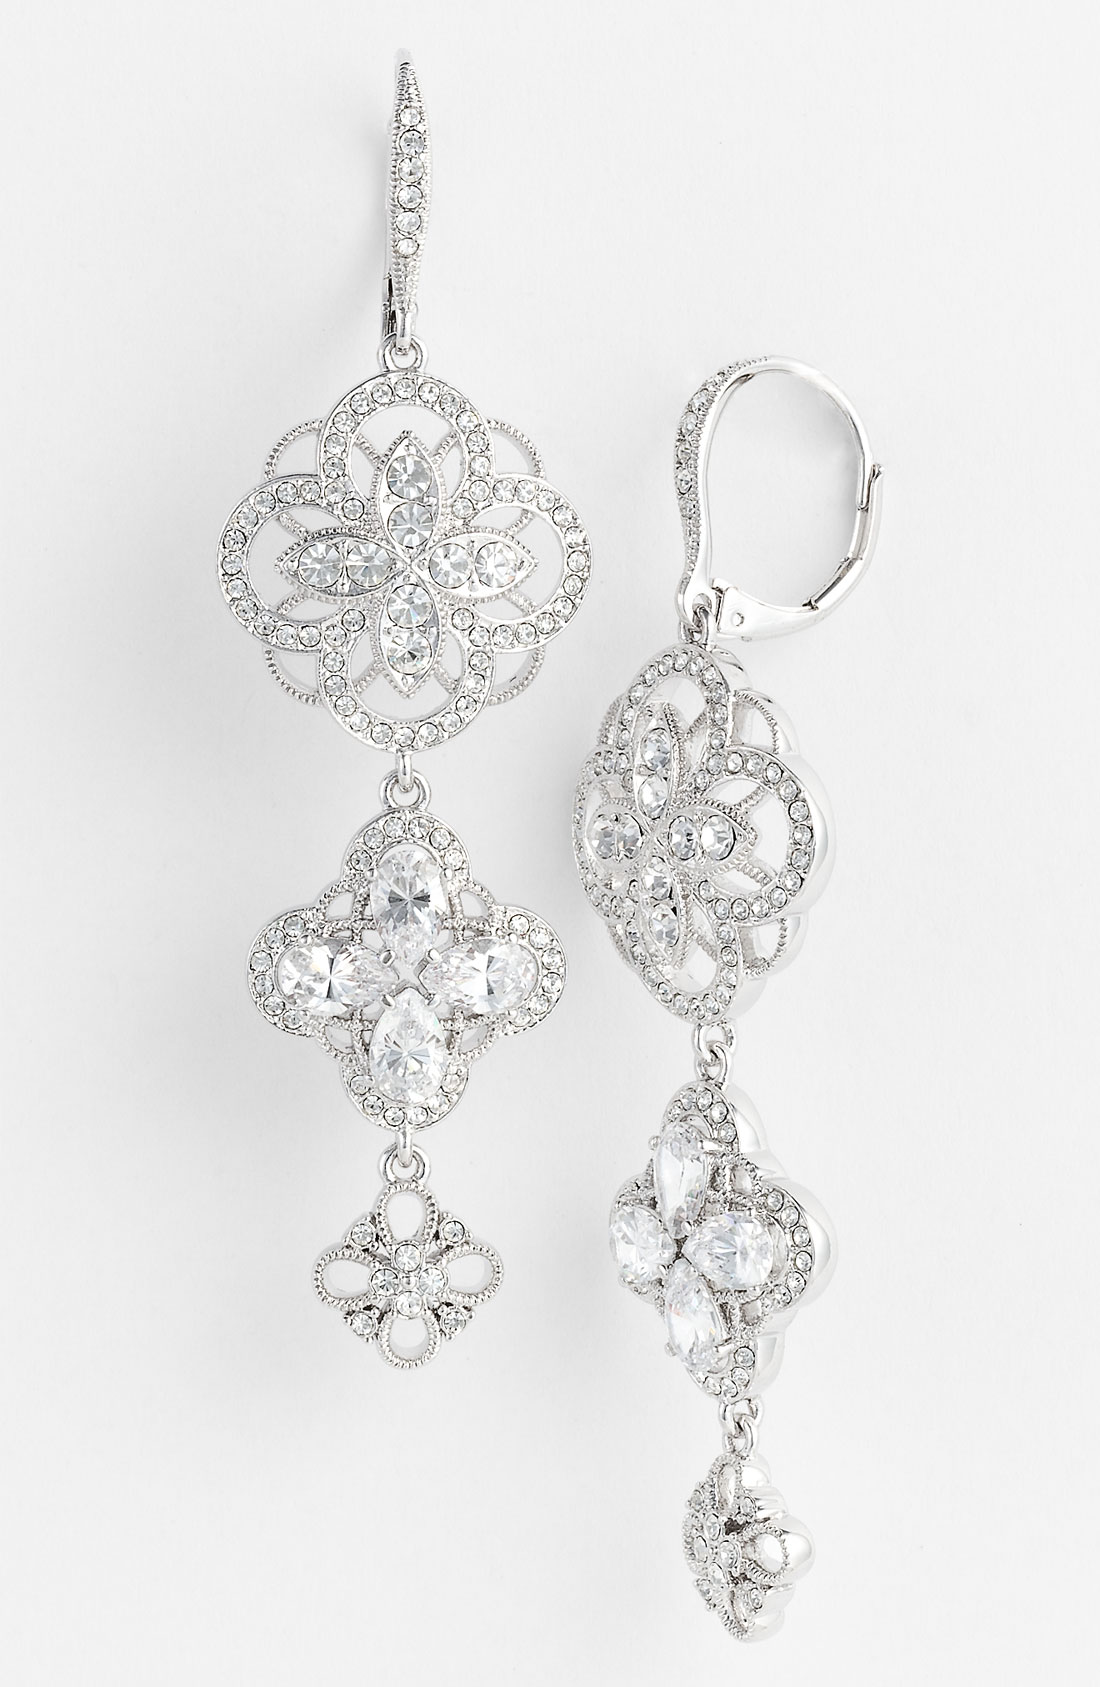 Lyst - Nadri Ariel Triple Drop Earrings in Metallic